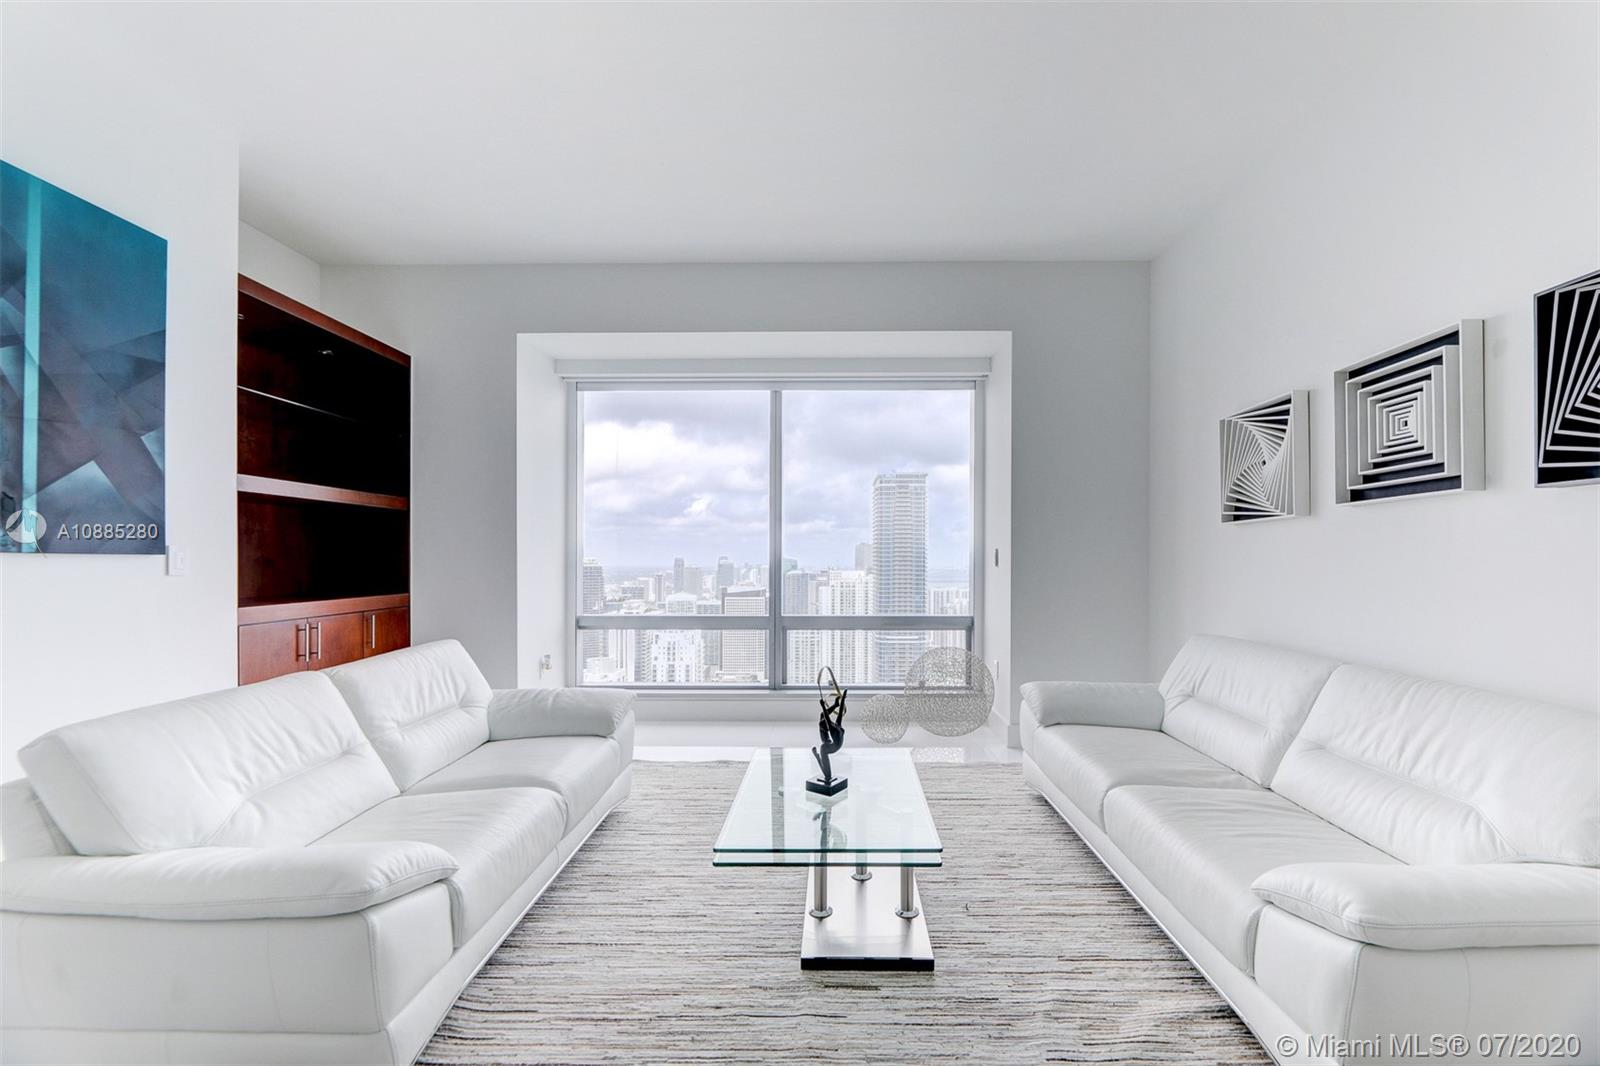 """WORLD CLASS, Five Star living at the """"Four Seasons Residences Miami"""" awaits. This unit features gorgeous white Quartz floors with breathtaking views of the Miami Skyline, Atlantic Ocean, and Biscayne Bay. The Master Suite is spacious with over-sized walk-in closet, deluxe master bathroom with marble tub and separate shower, and views of the Miami skyline. The gourmet kitchen features top-of-the-line Viking appliances, built-in wood cabinetry, and wine cellar. Laundry room located within unit with washer/Dryer. Unit is being sold with a storage unit! Other luxury features include impact r. windows and electronic blackout blinds. Available furnished and unfurnished. Lavish Hotel amenities include: Gym, Valet, Spa, 3 pools, Cabanas, Room Service, 24-hour concierge and much more!"""